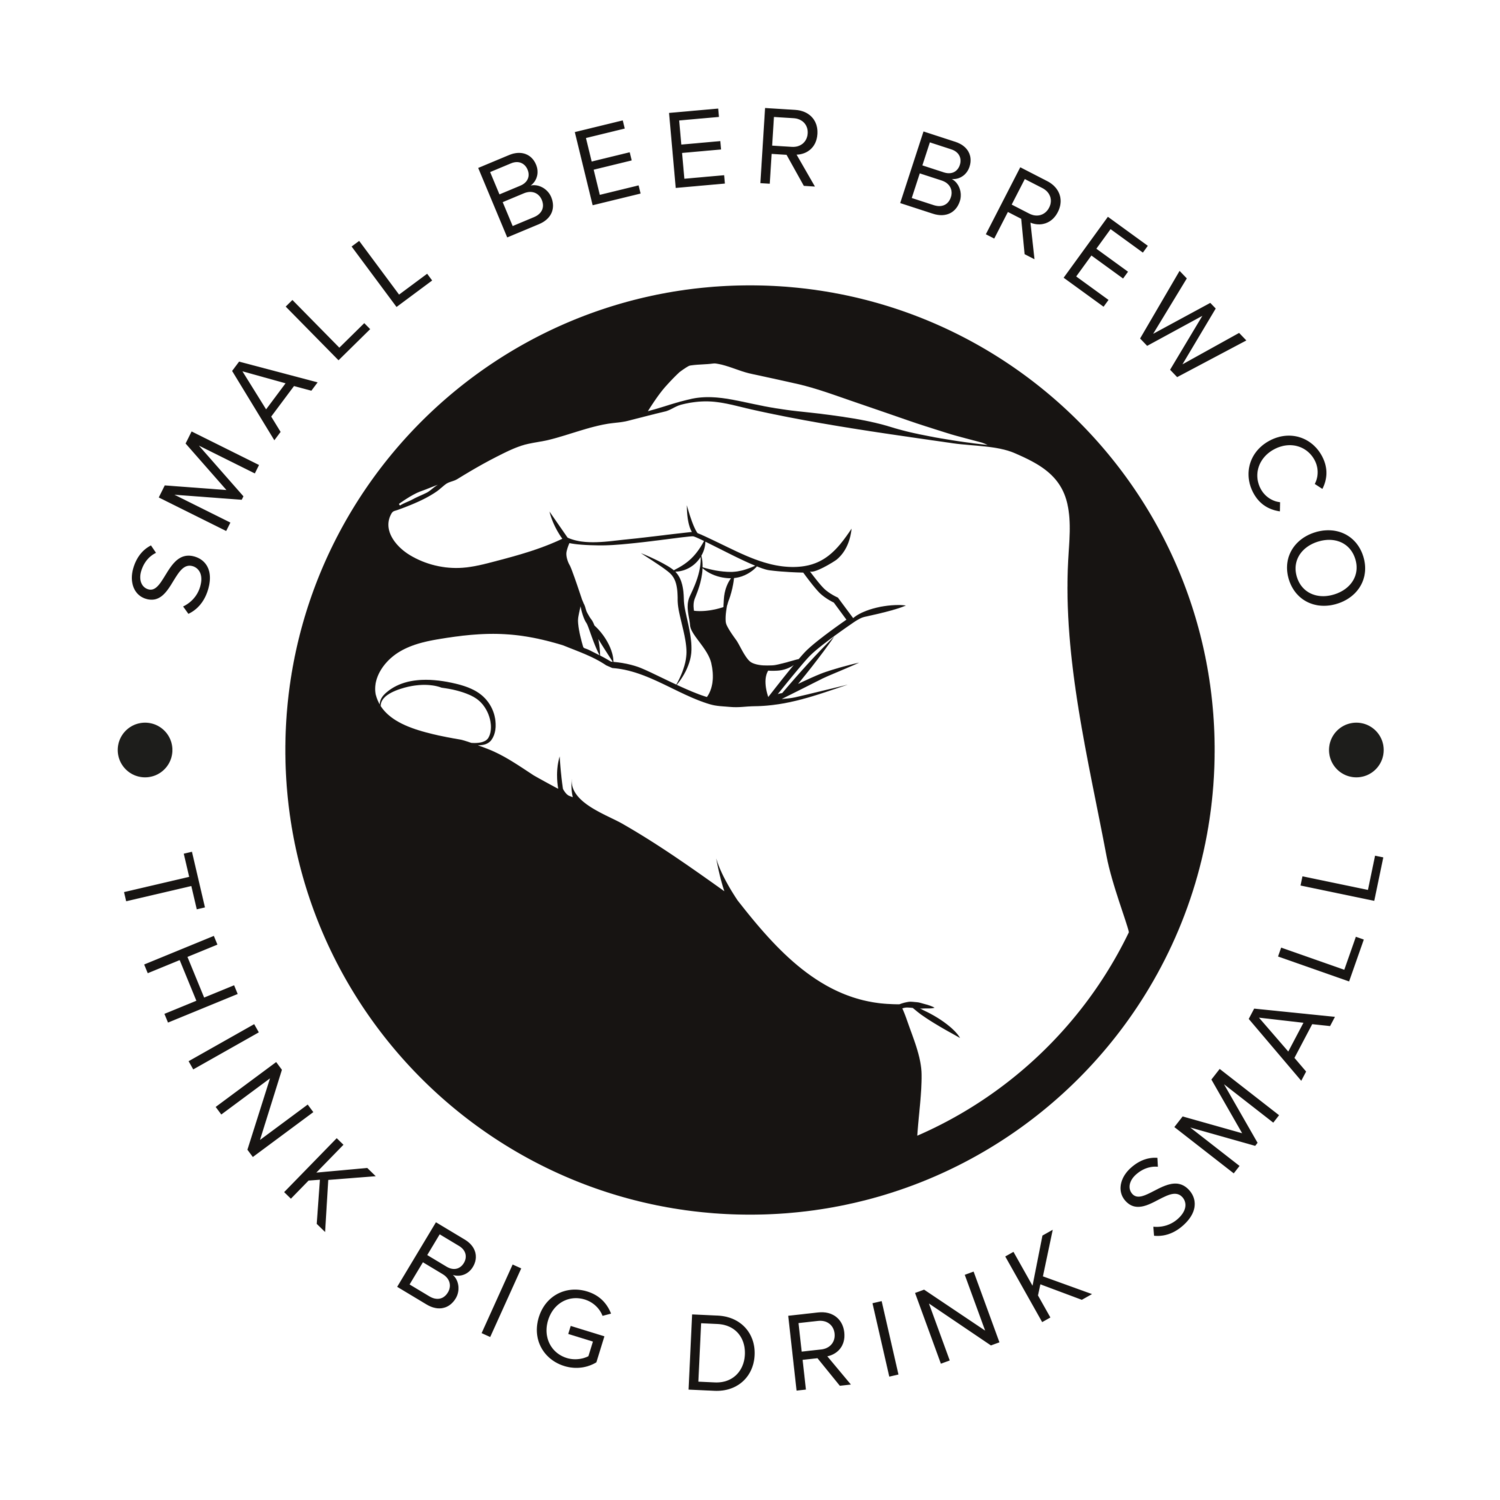 small beer brew co the original small beers